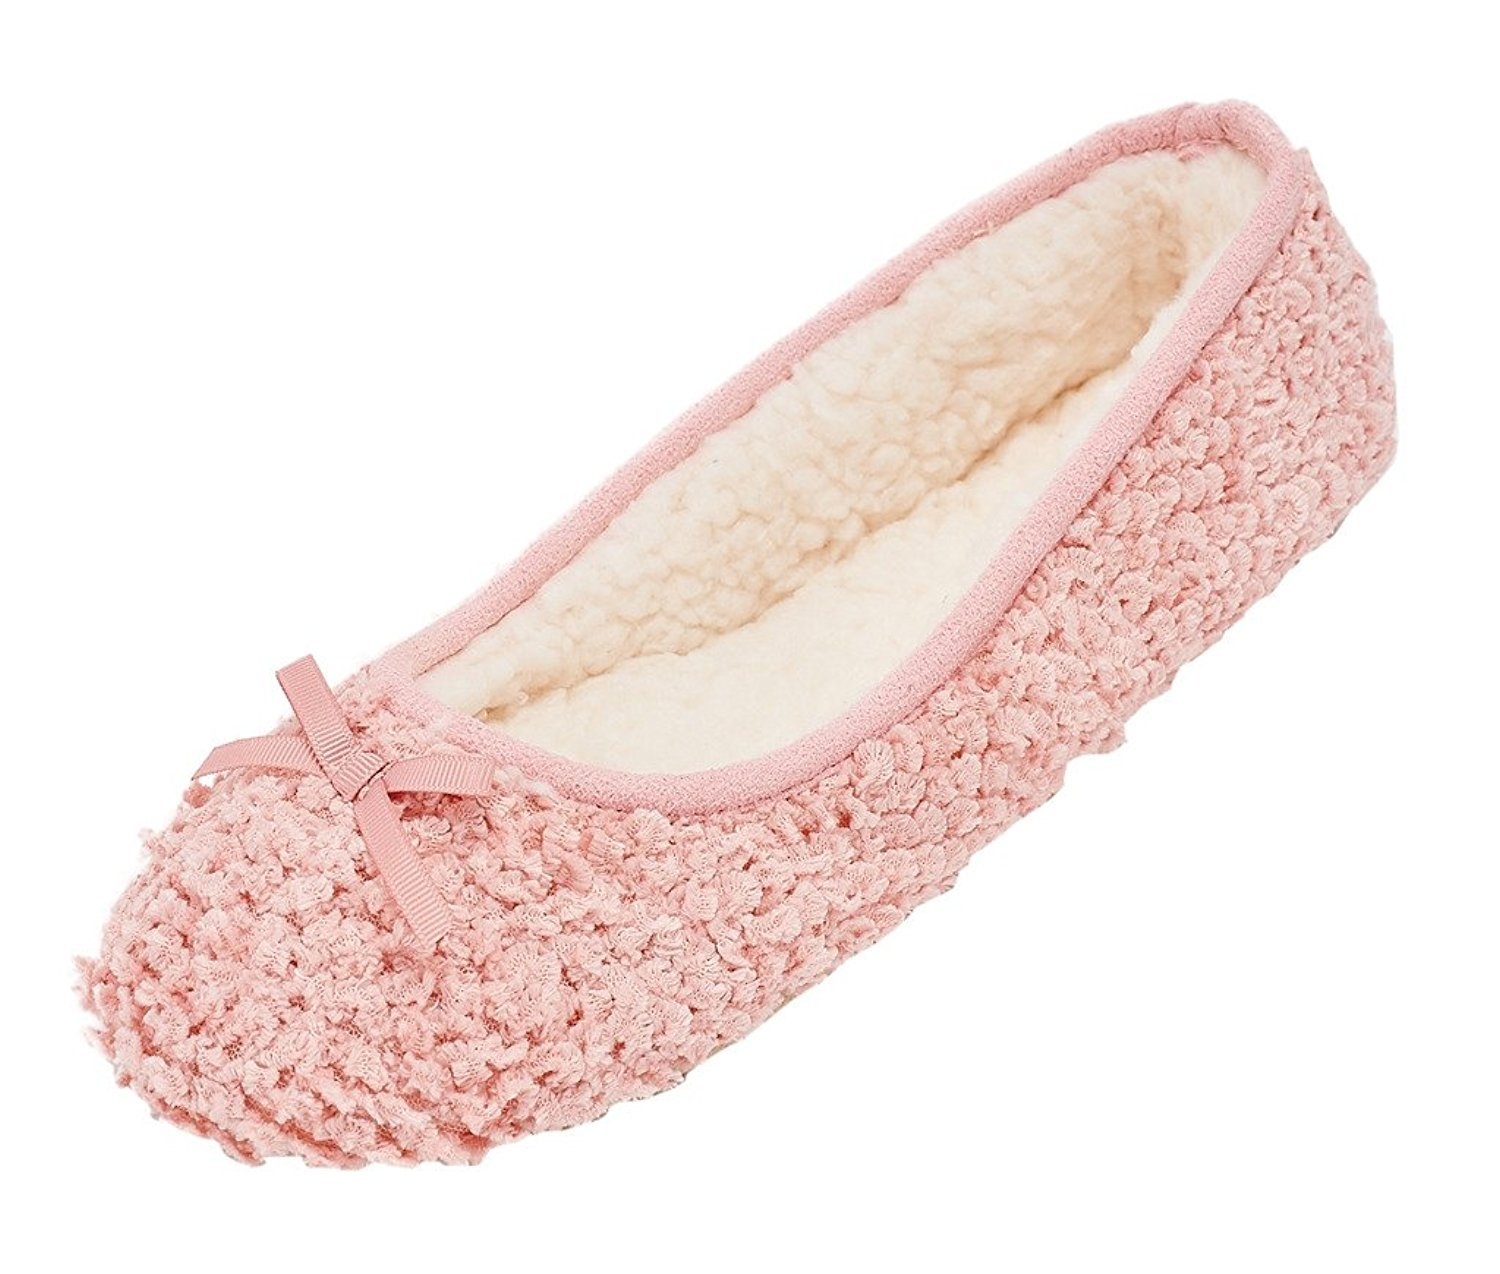 MIXIN Women's Elegant Comfy Litchi Cashmere Soft Sole Indoor Ballerina Flats House Slippers Pink Size 7